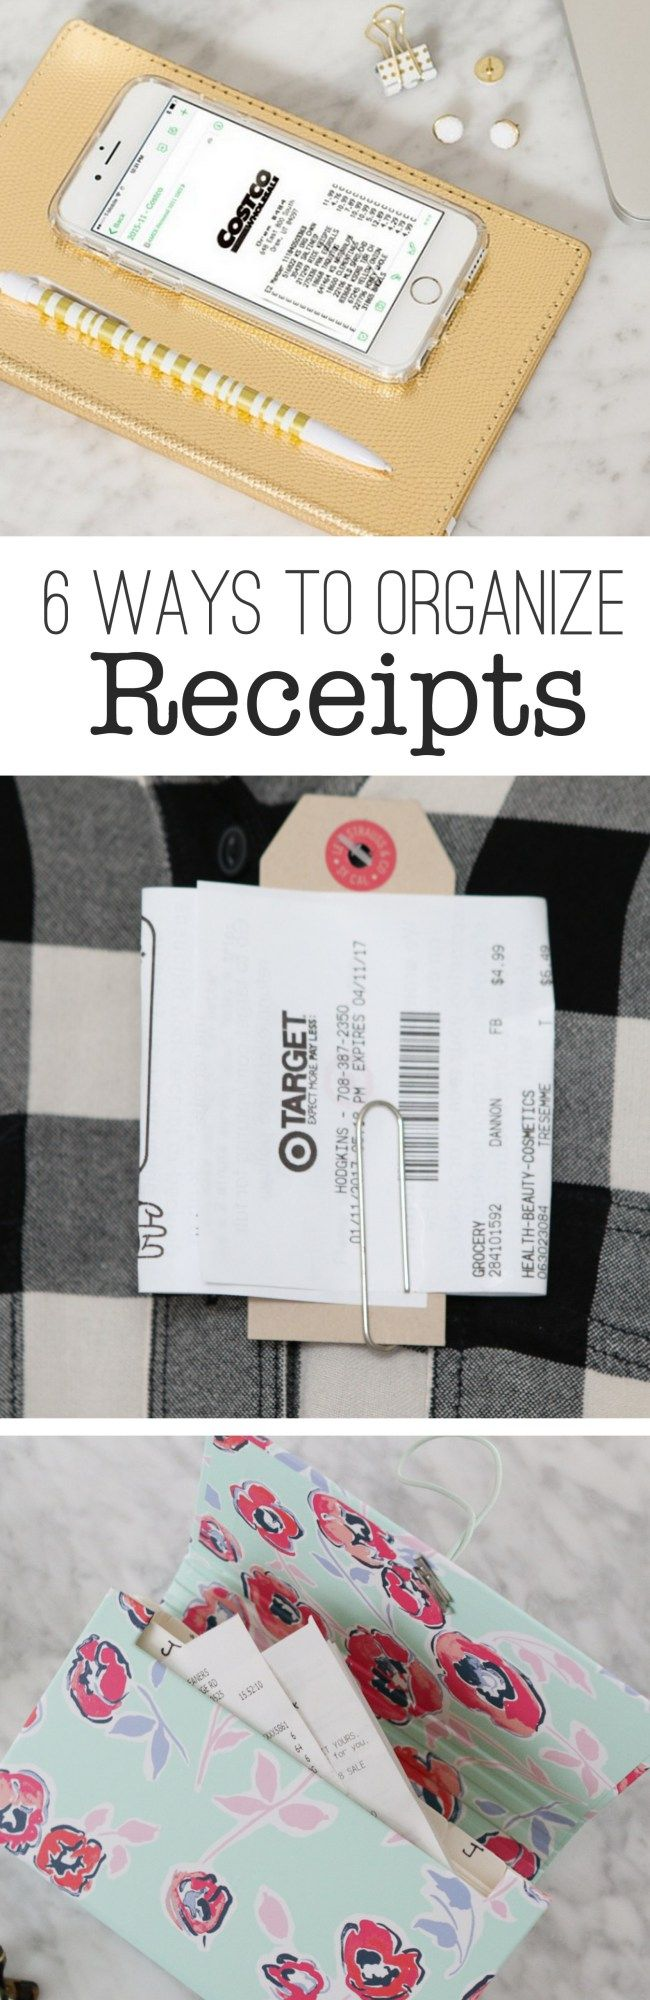 Organizing Receipts the easy way! Check out these ideas to take your organization skills to the next level and get your paper clutter under control.